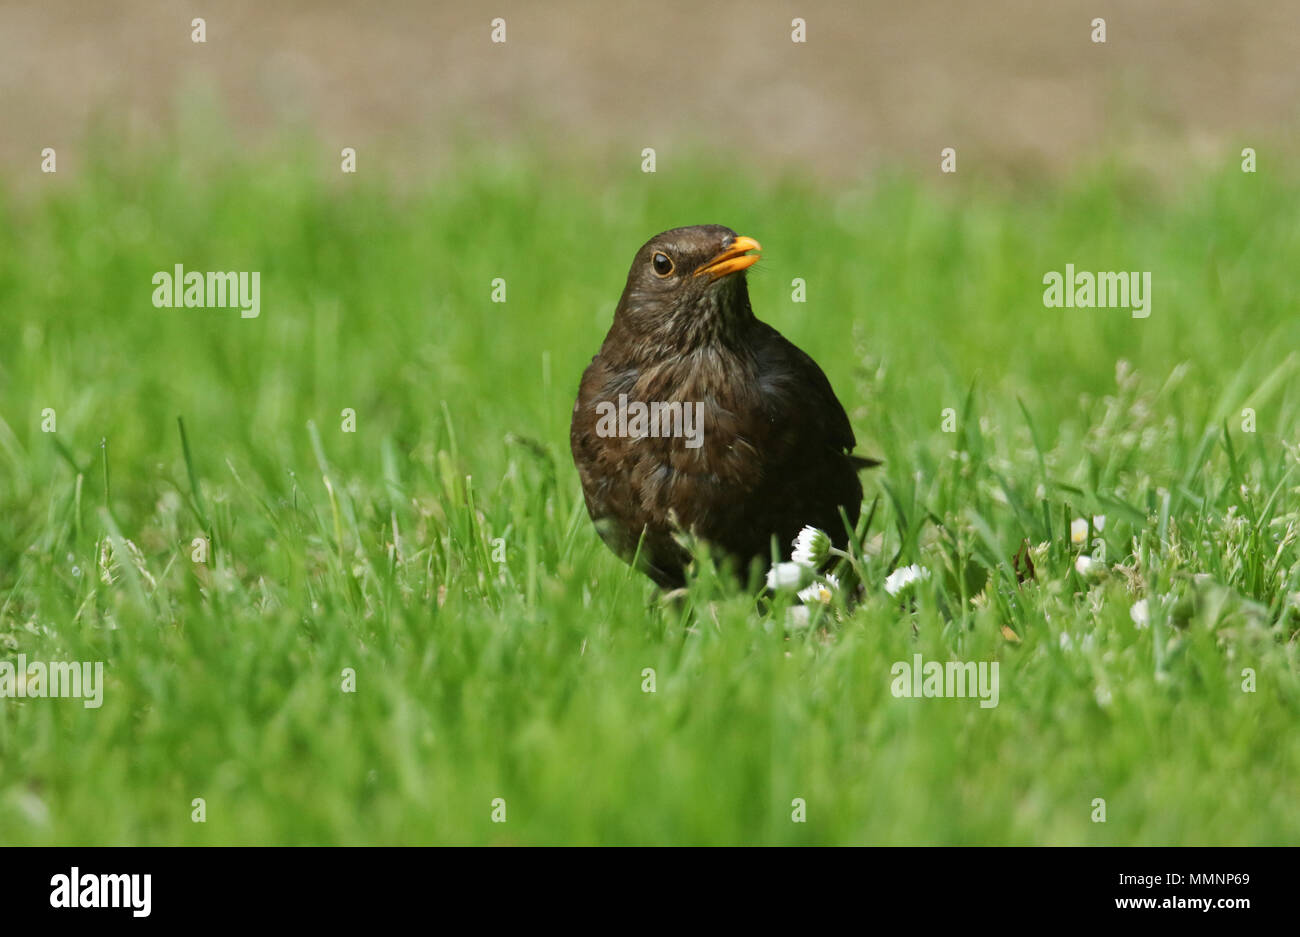 A pretty female Blackbird (Turdus merula) hunting for food in the grass. - Stock Image